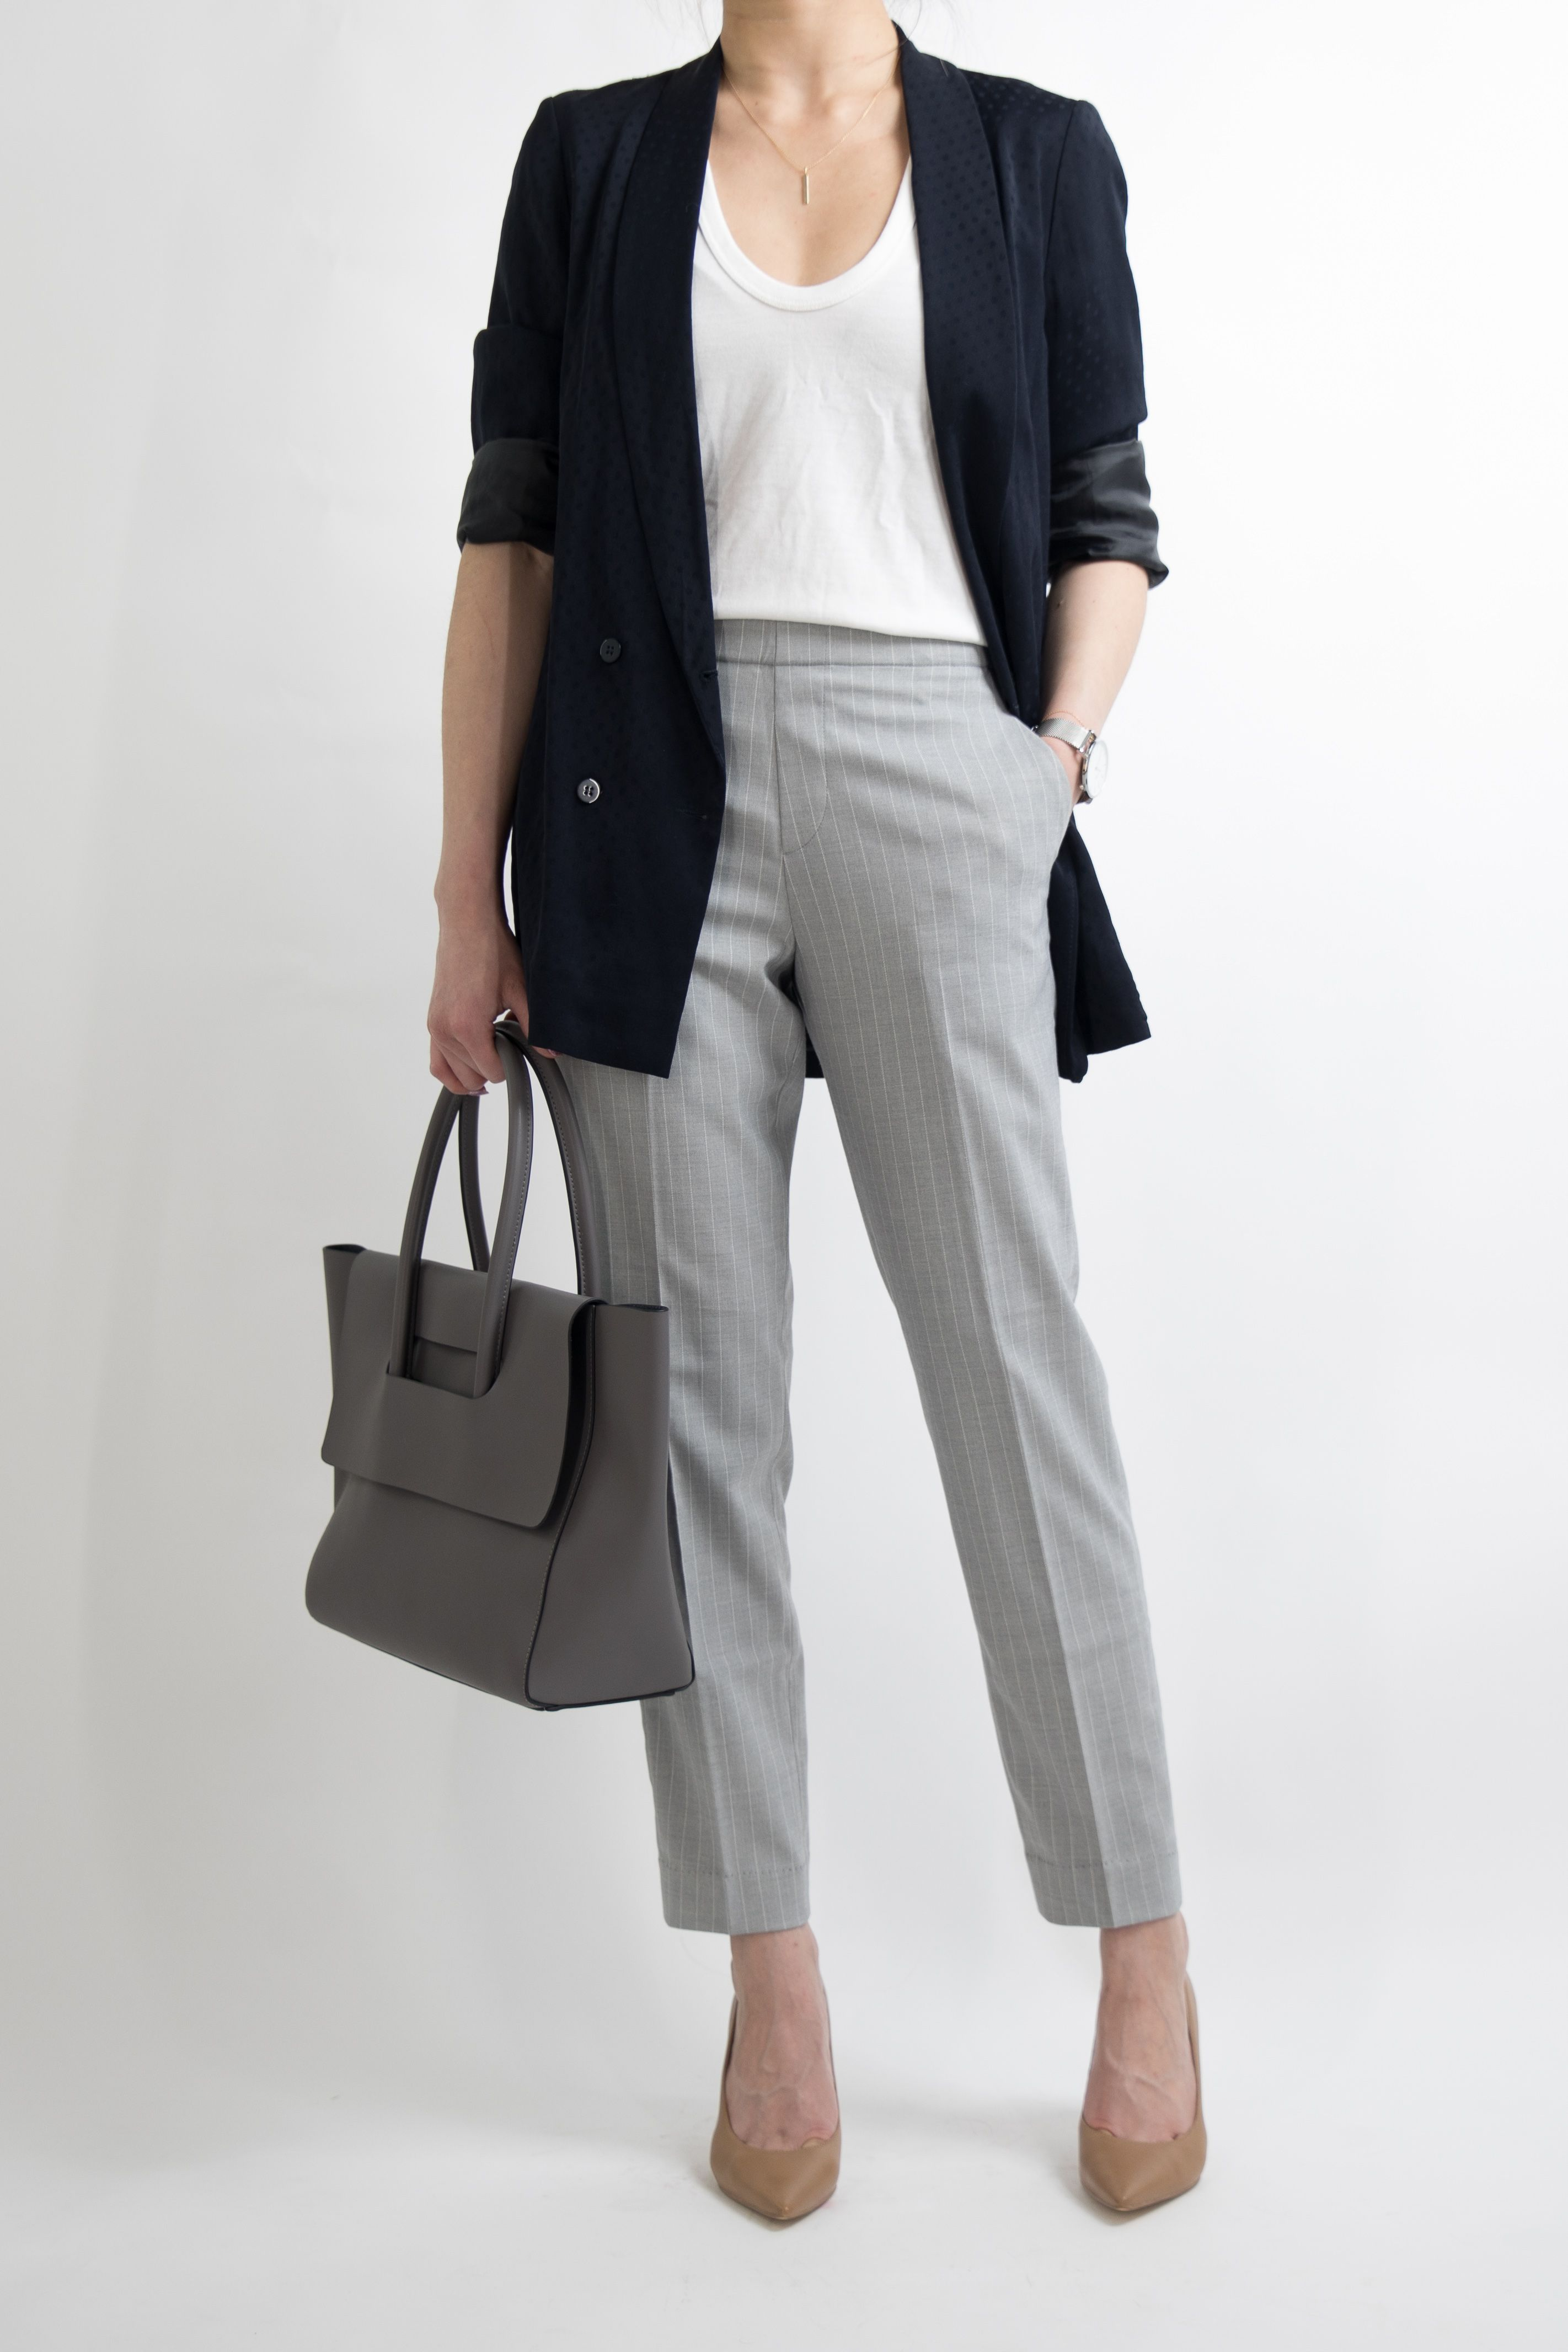 1 MONTH Of Work Outfit Ideas For Women Who Work In An